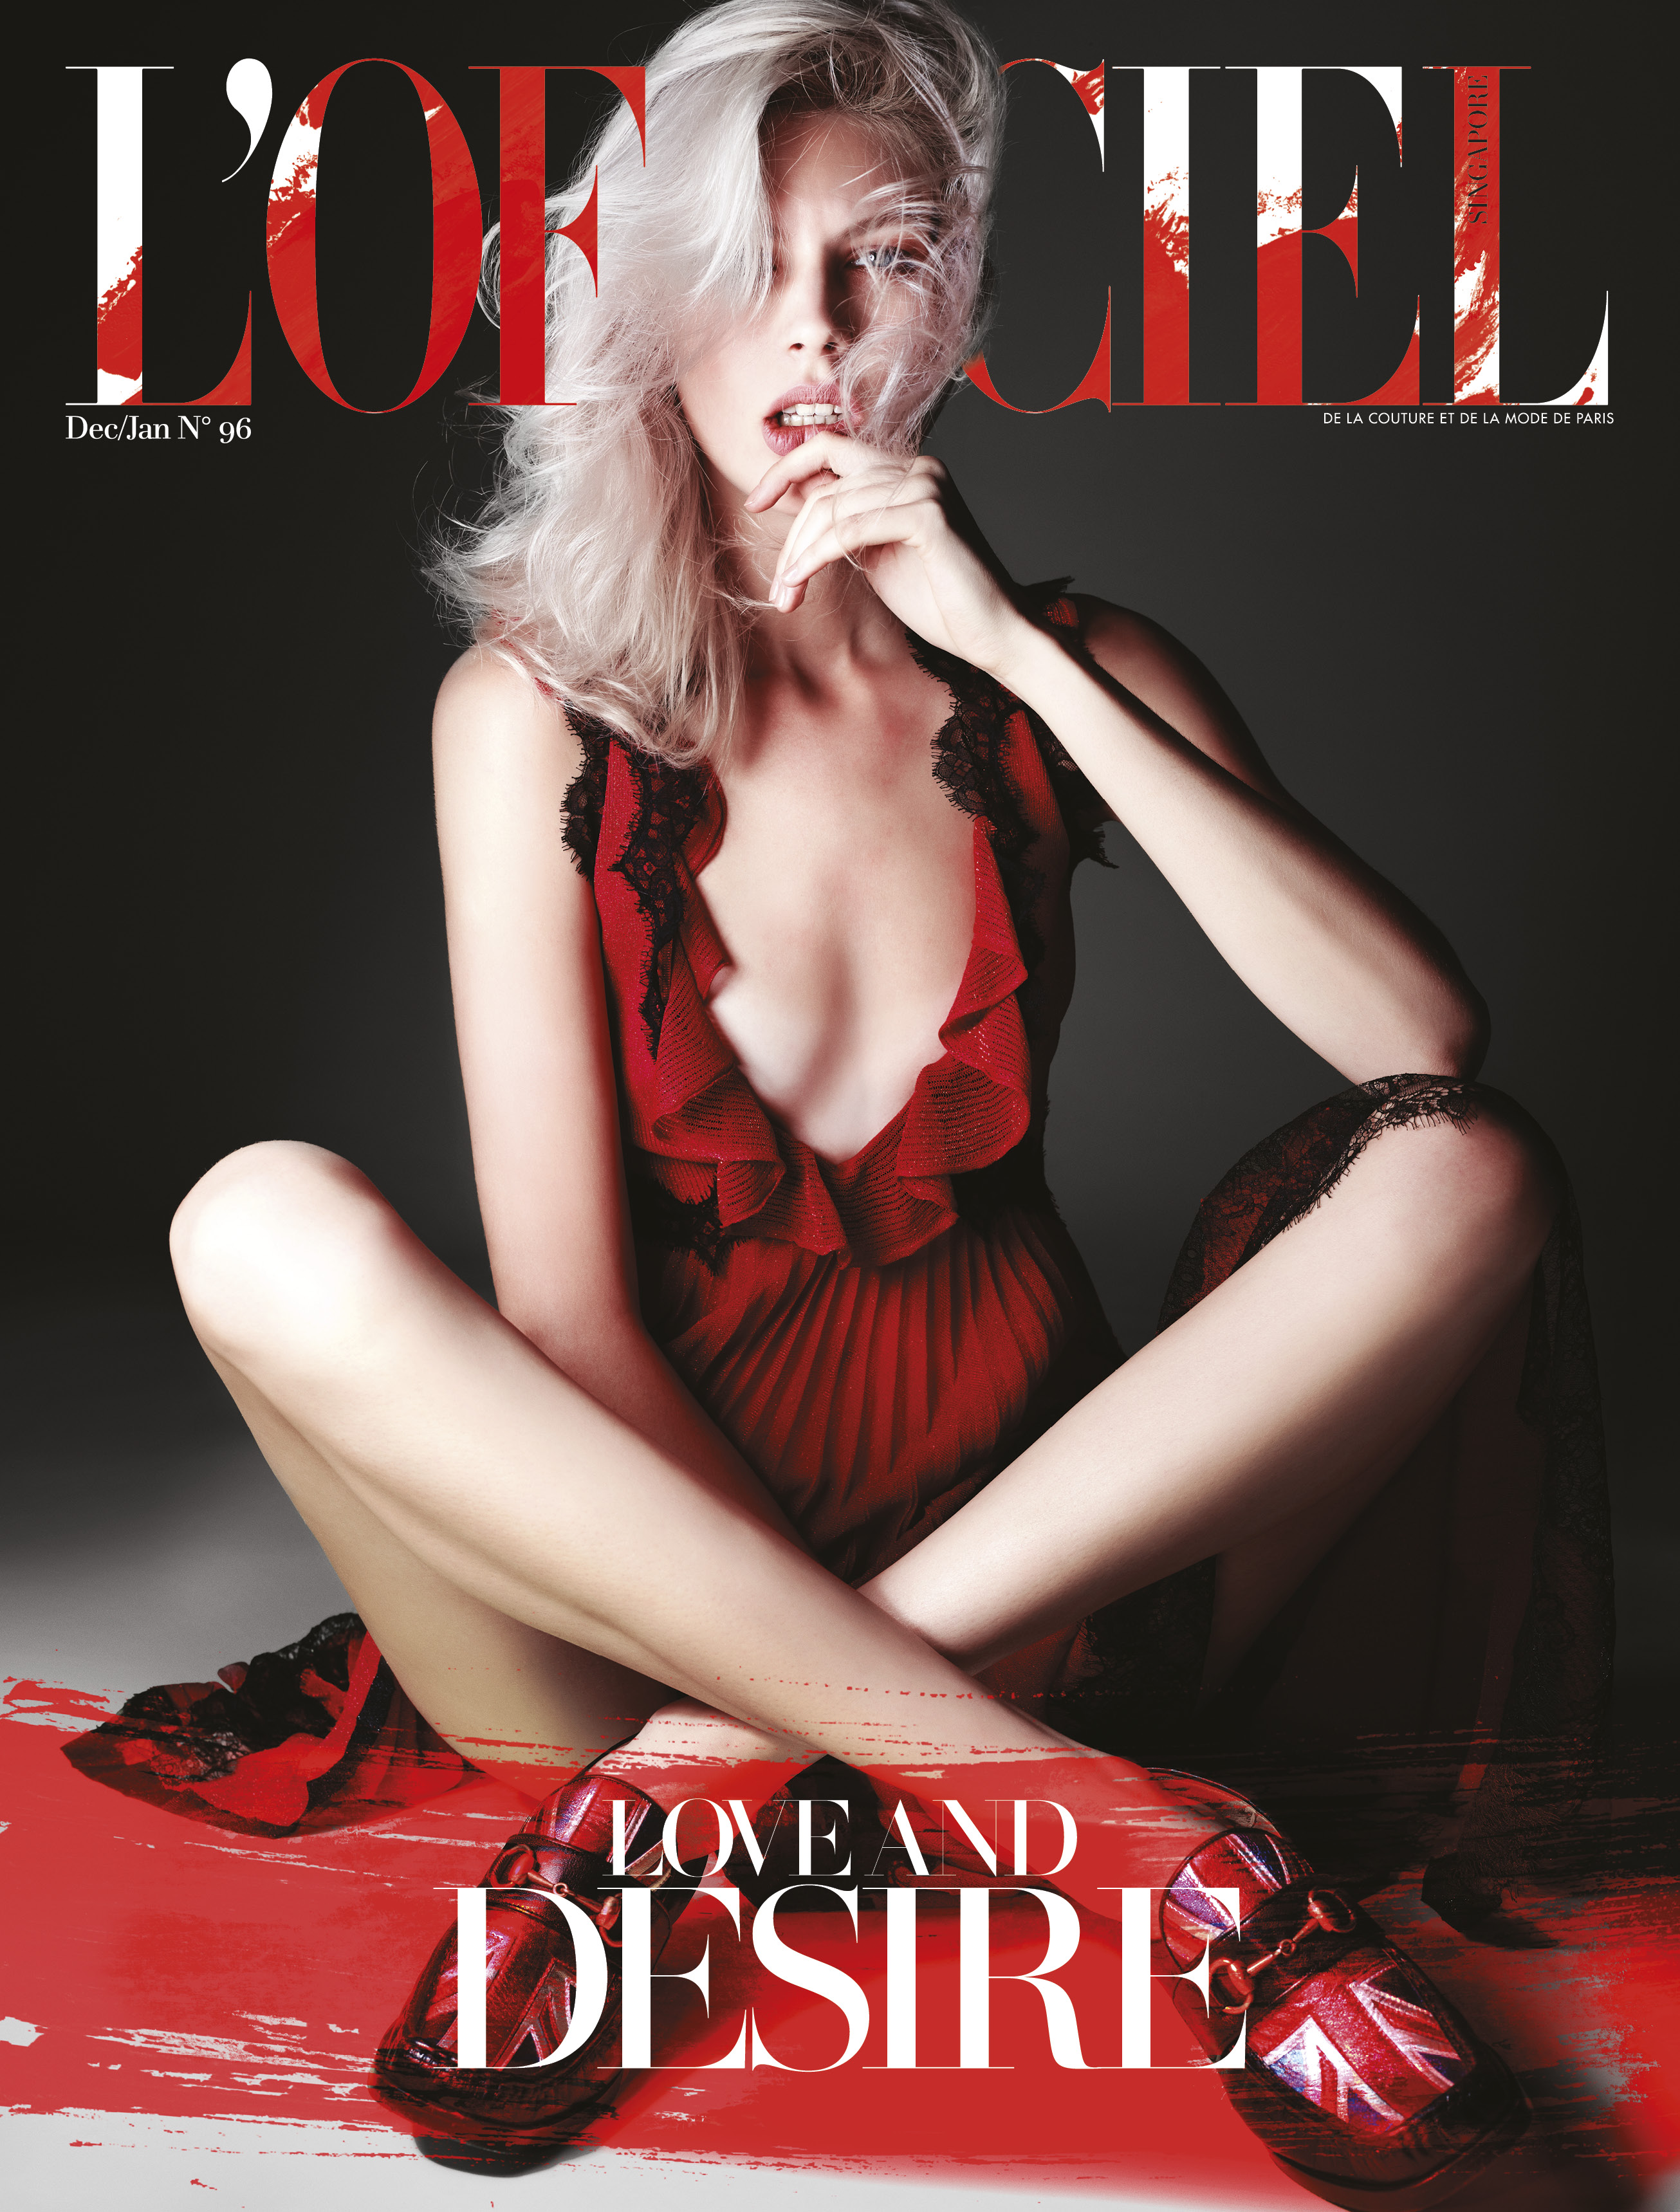 Eneh Loranth on the cover of L'Officiel Singapore December/January 2017